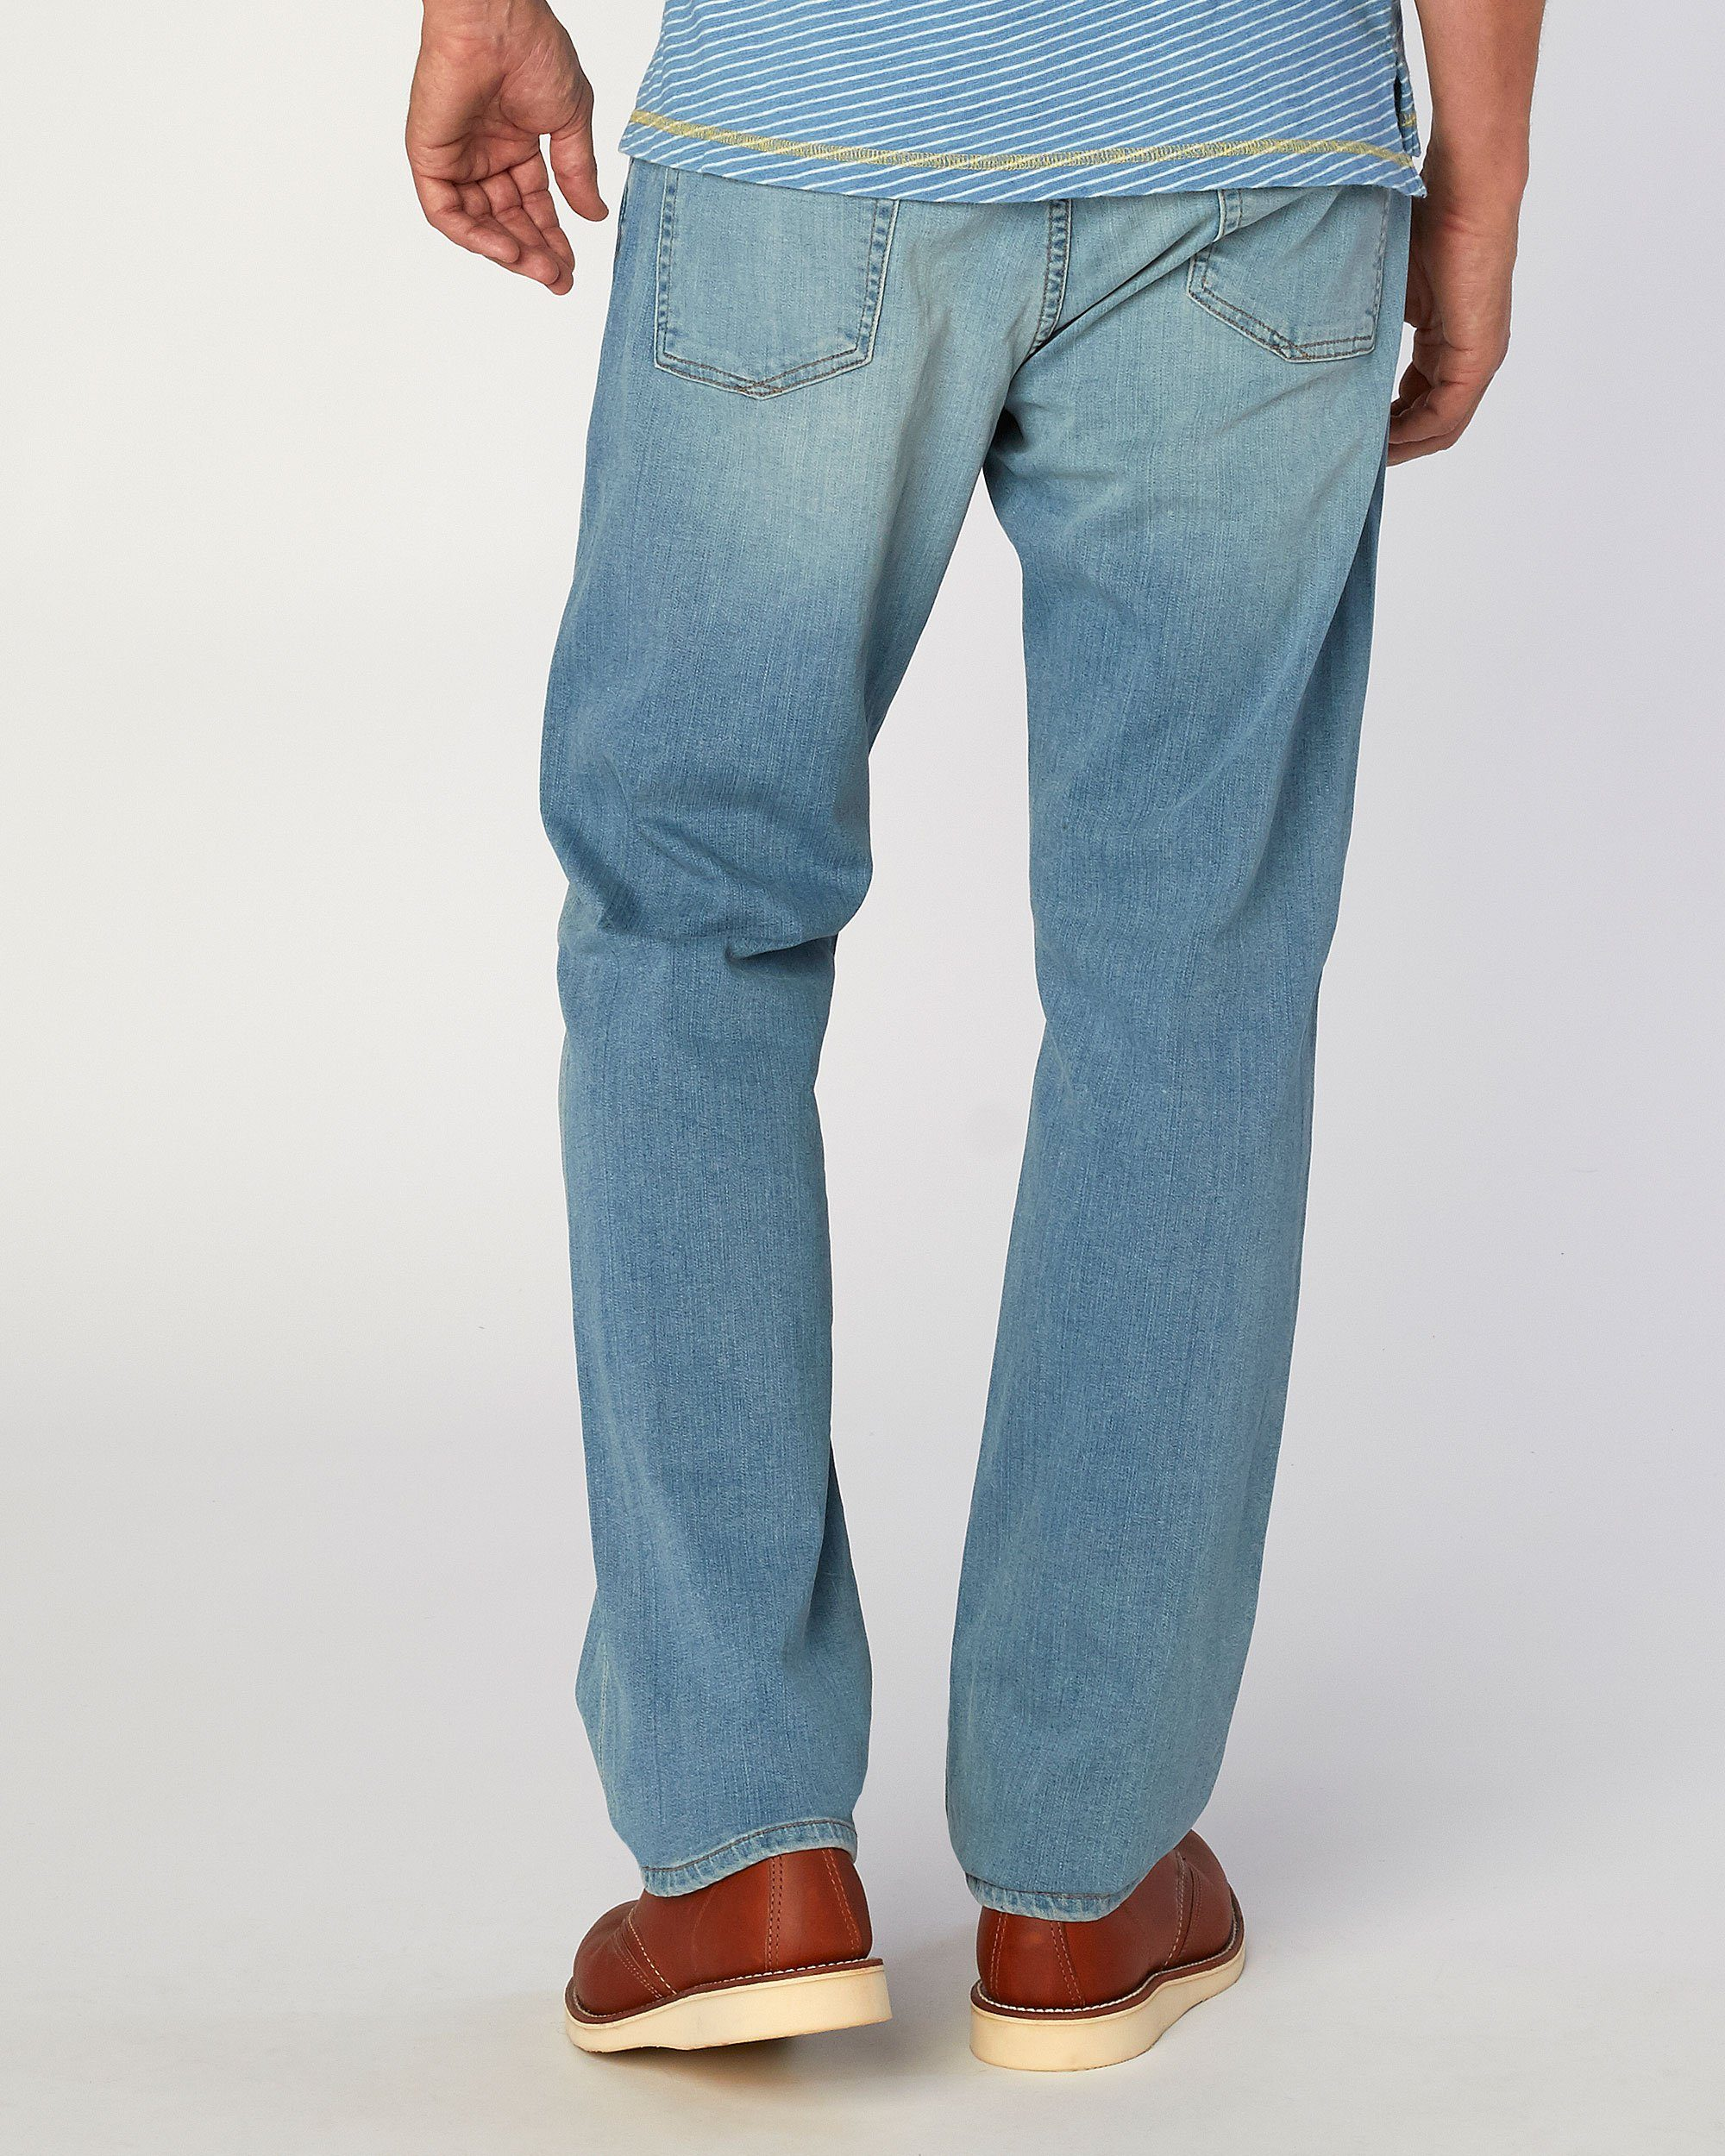 Waterman Relaxed Fit J-Bay Light Flex